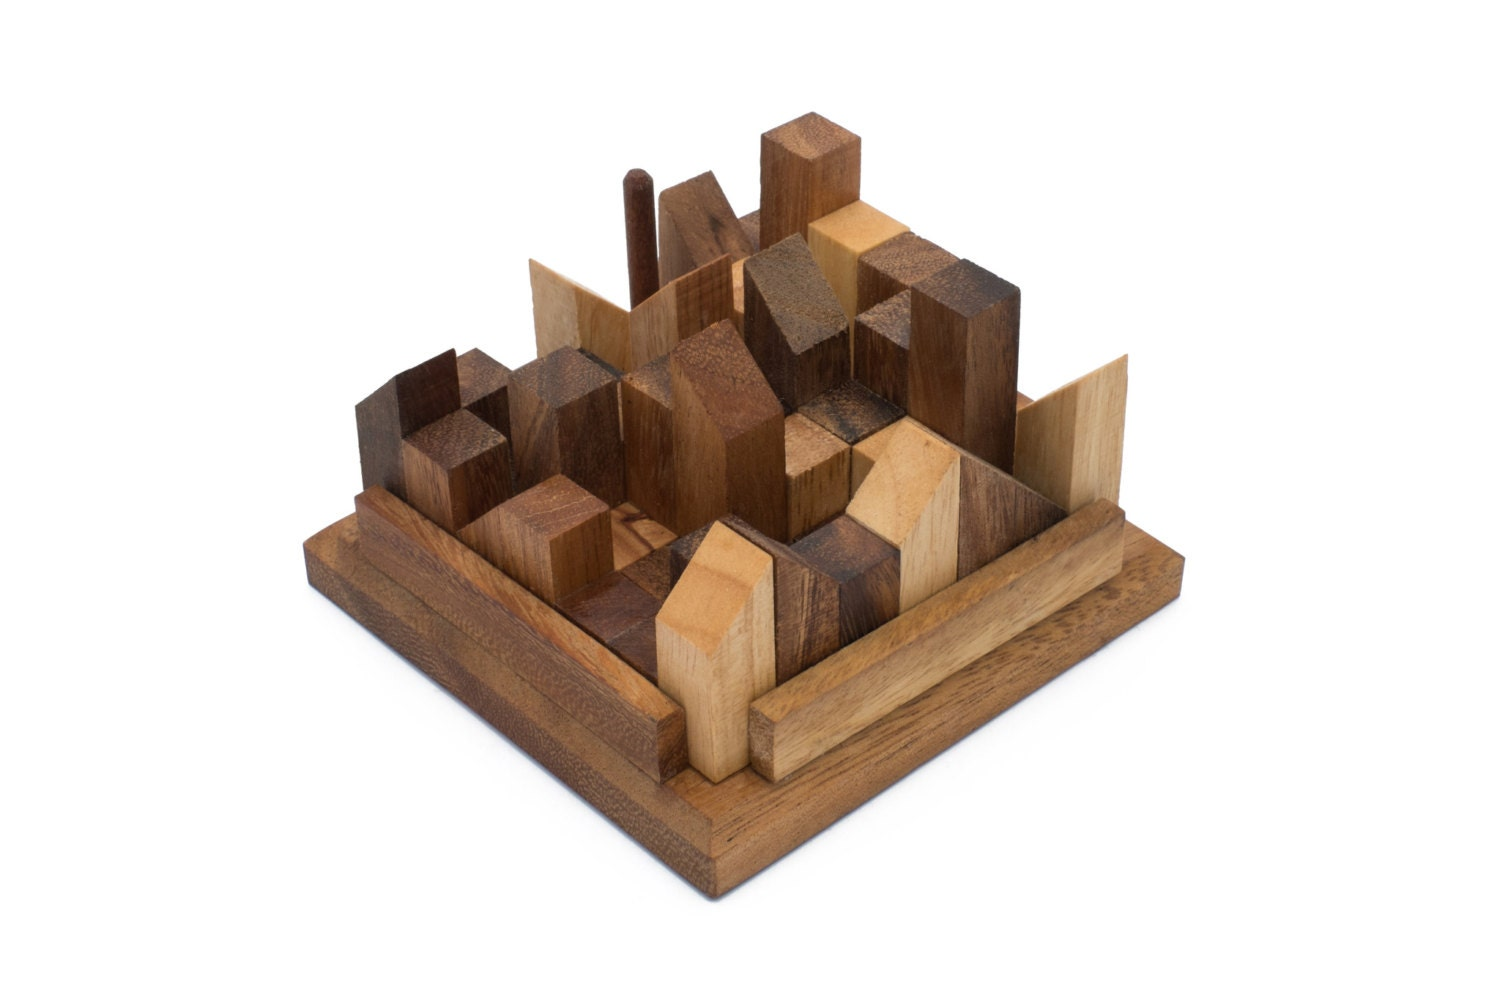 Wooden Toy : Big City Challenge The Organic Natural Puzzle